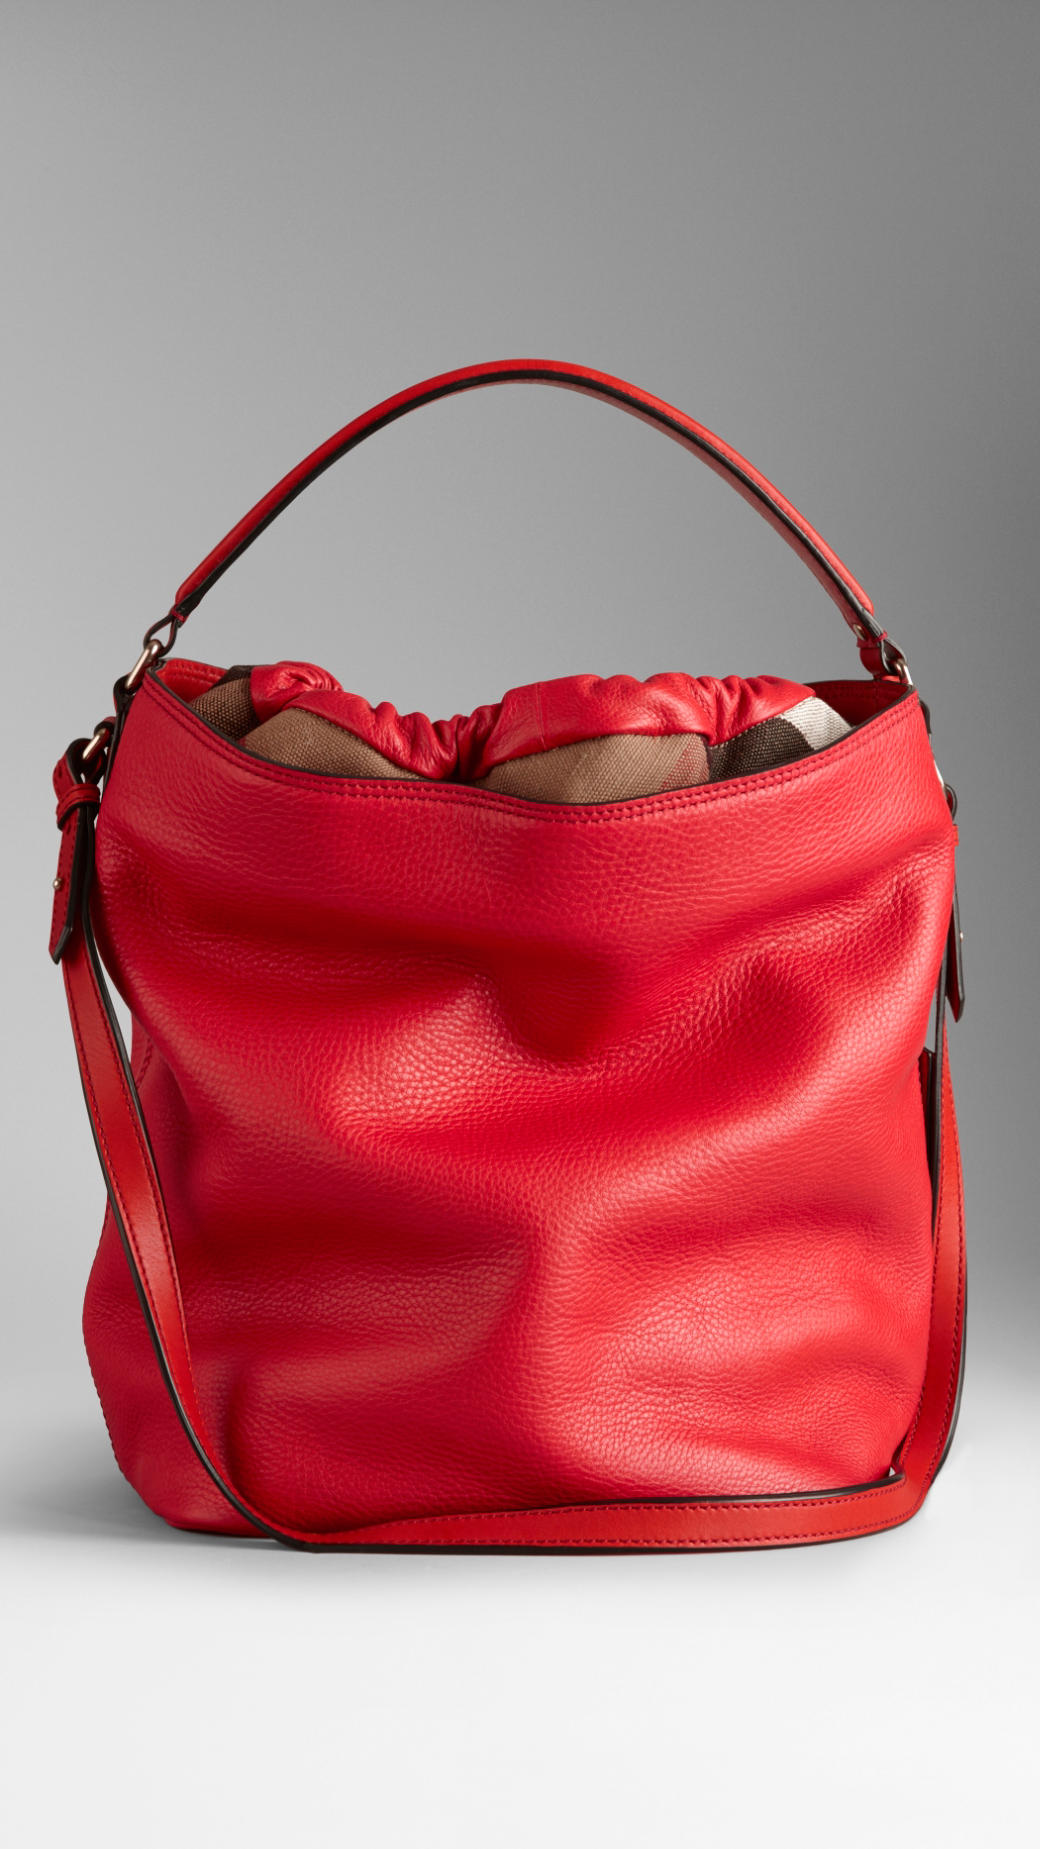 Burberry Medium Brit Check Leather Hobo Bag in Red | Lyst